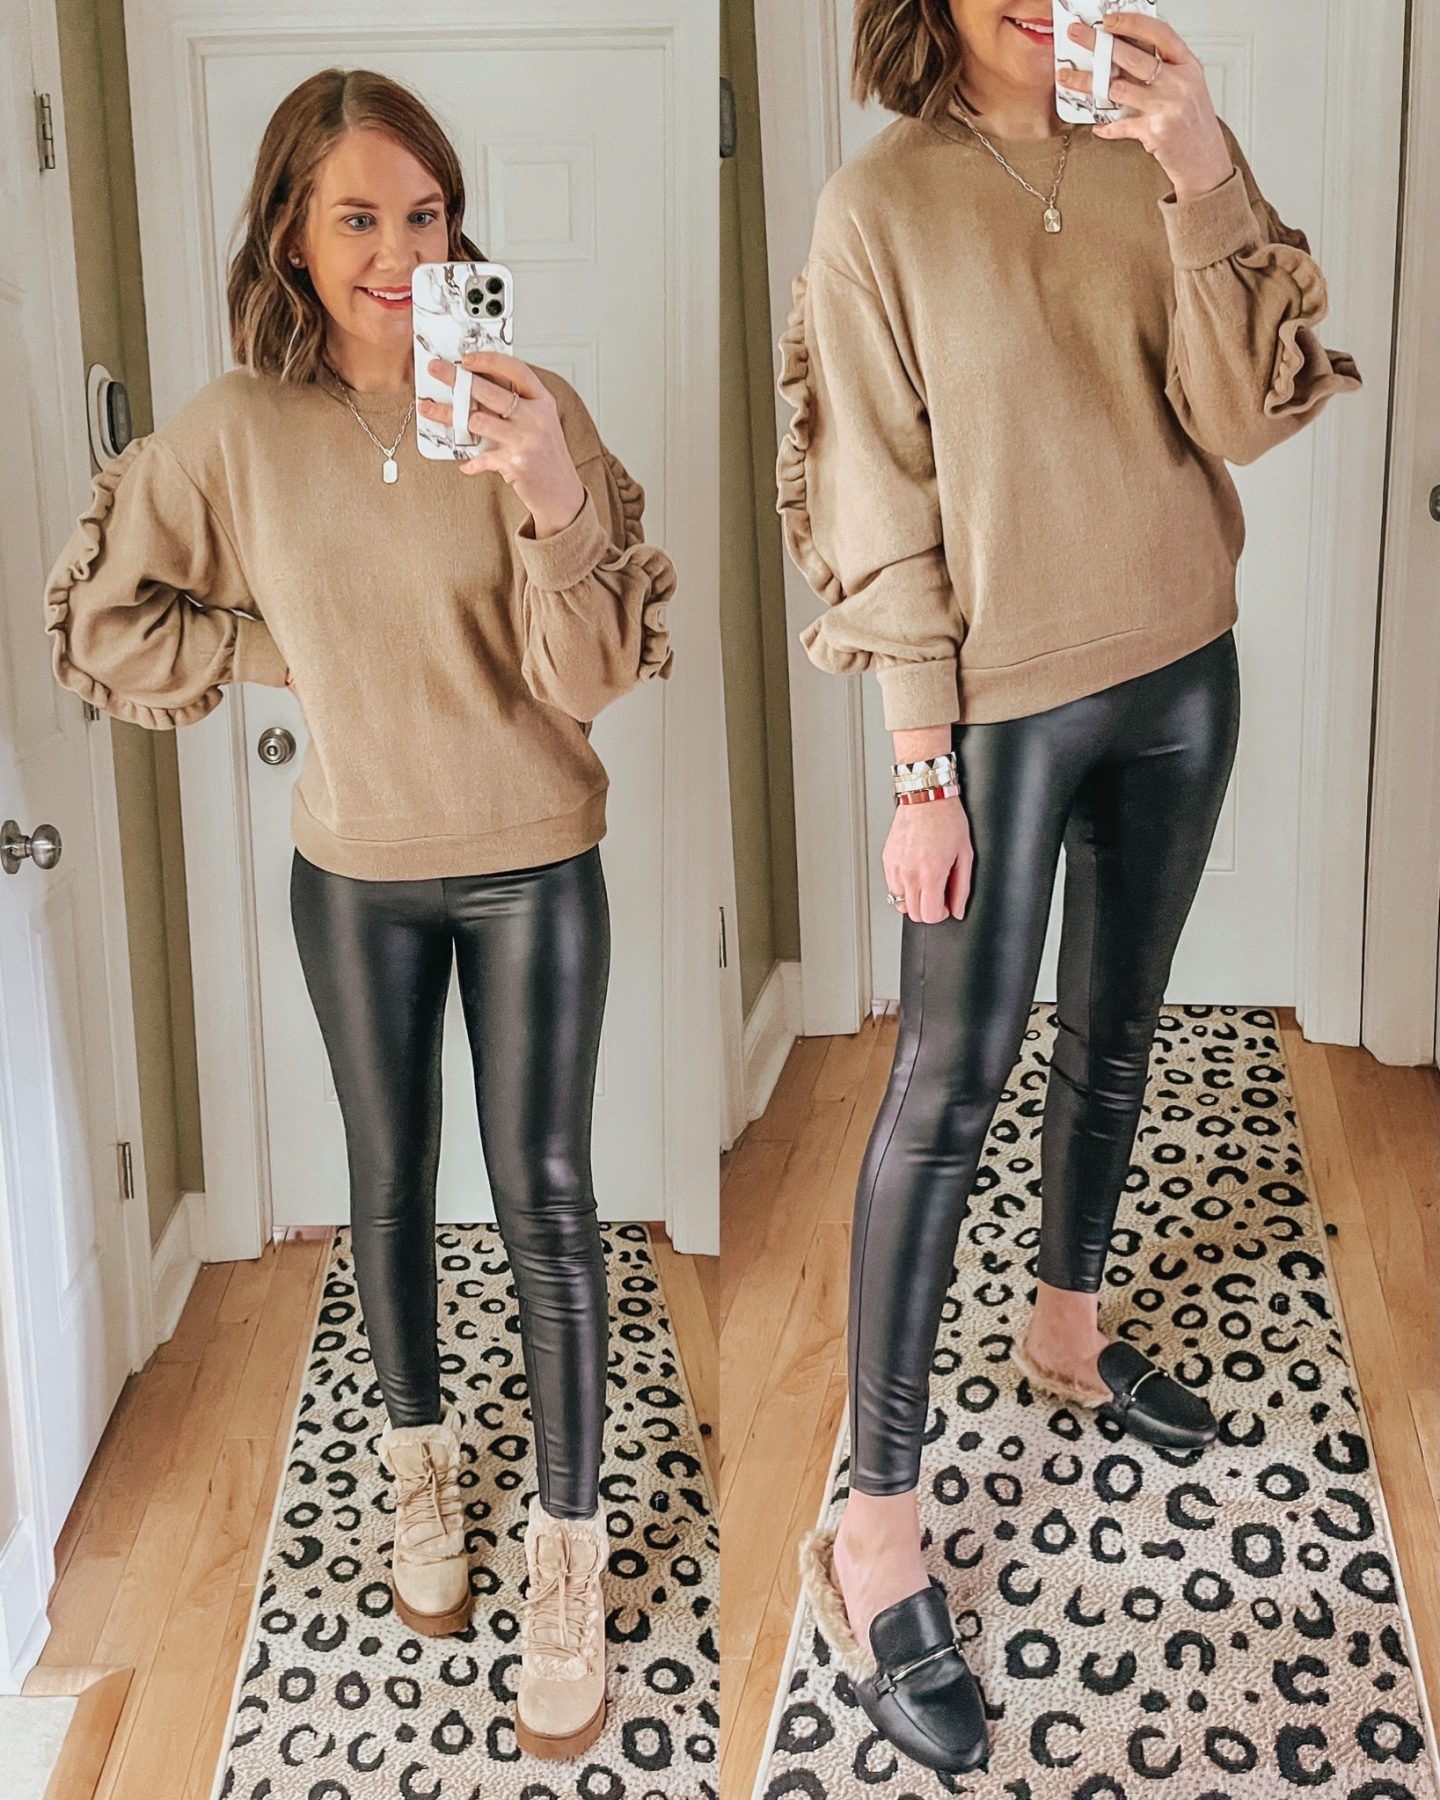 2020 TARGET WINTER FASHION PREVIEW, faux leather lined leggings, ruffle sleeve sweatshirt